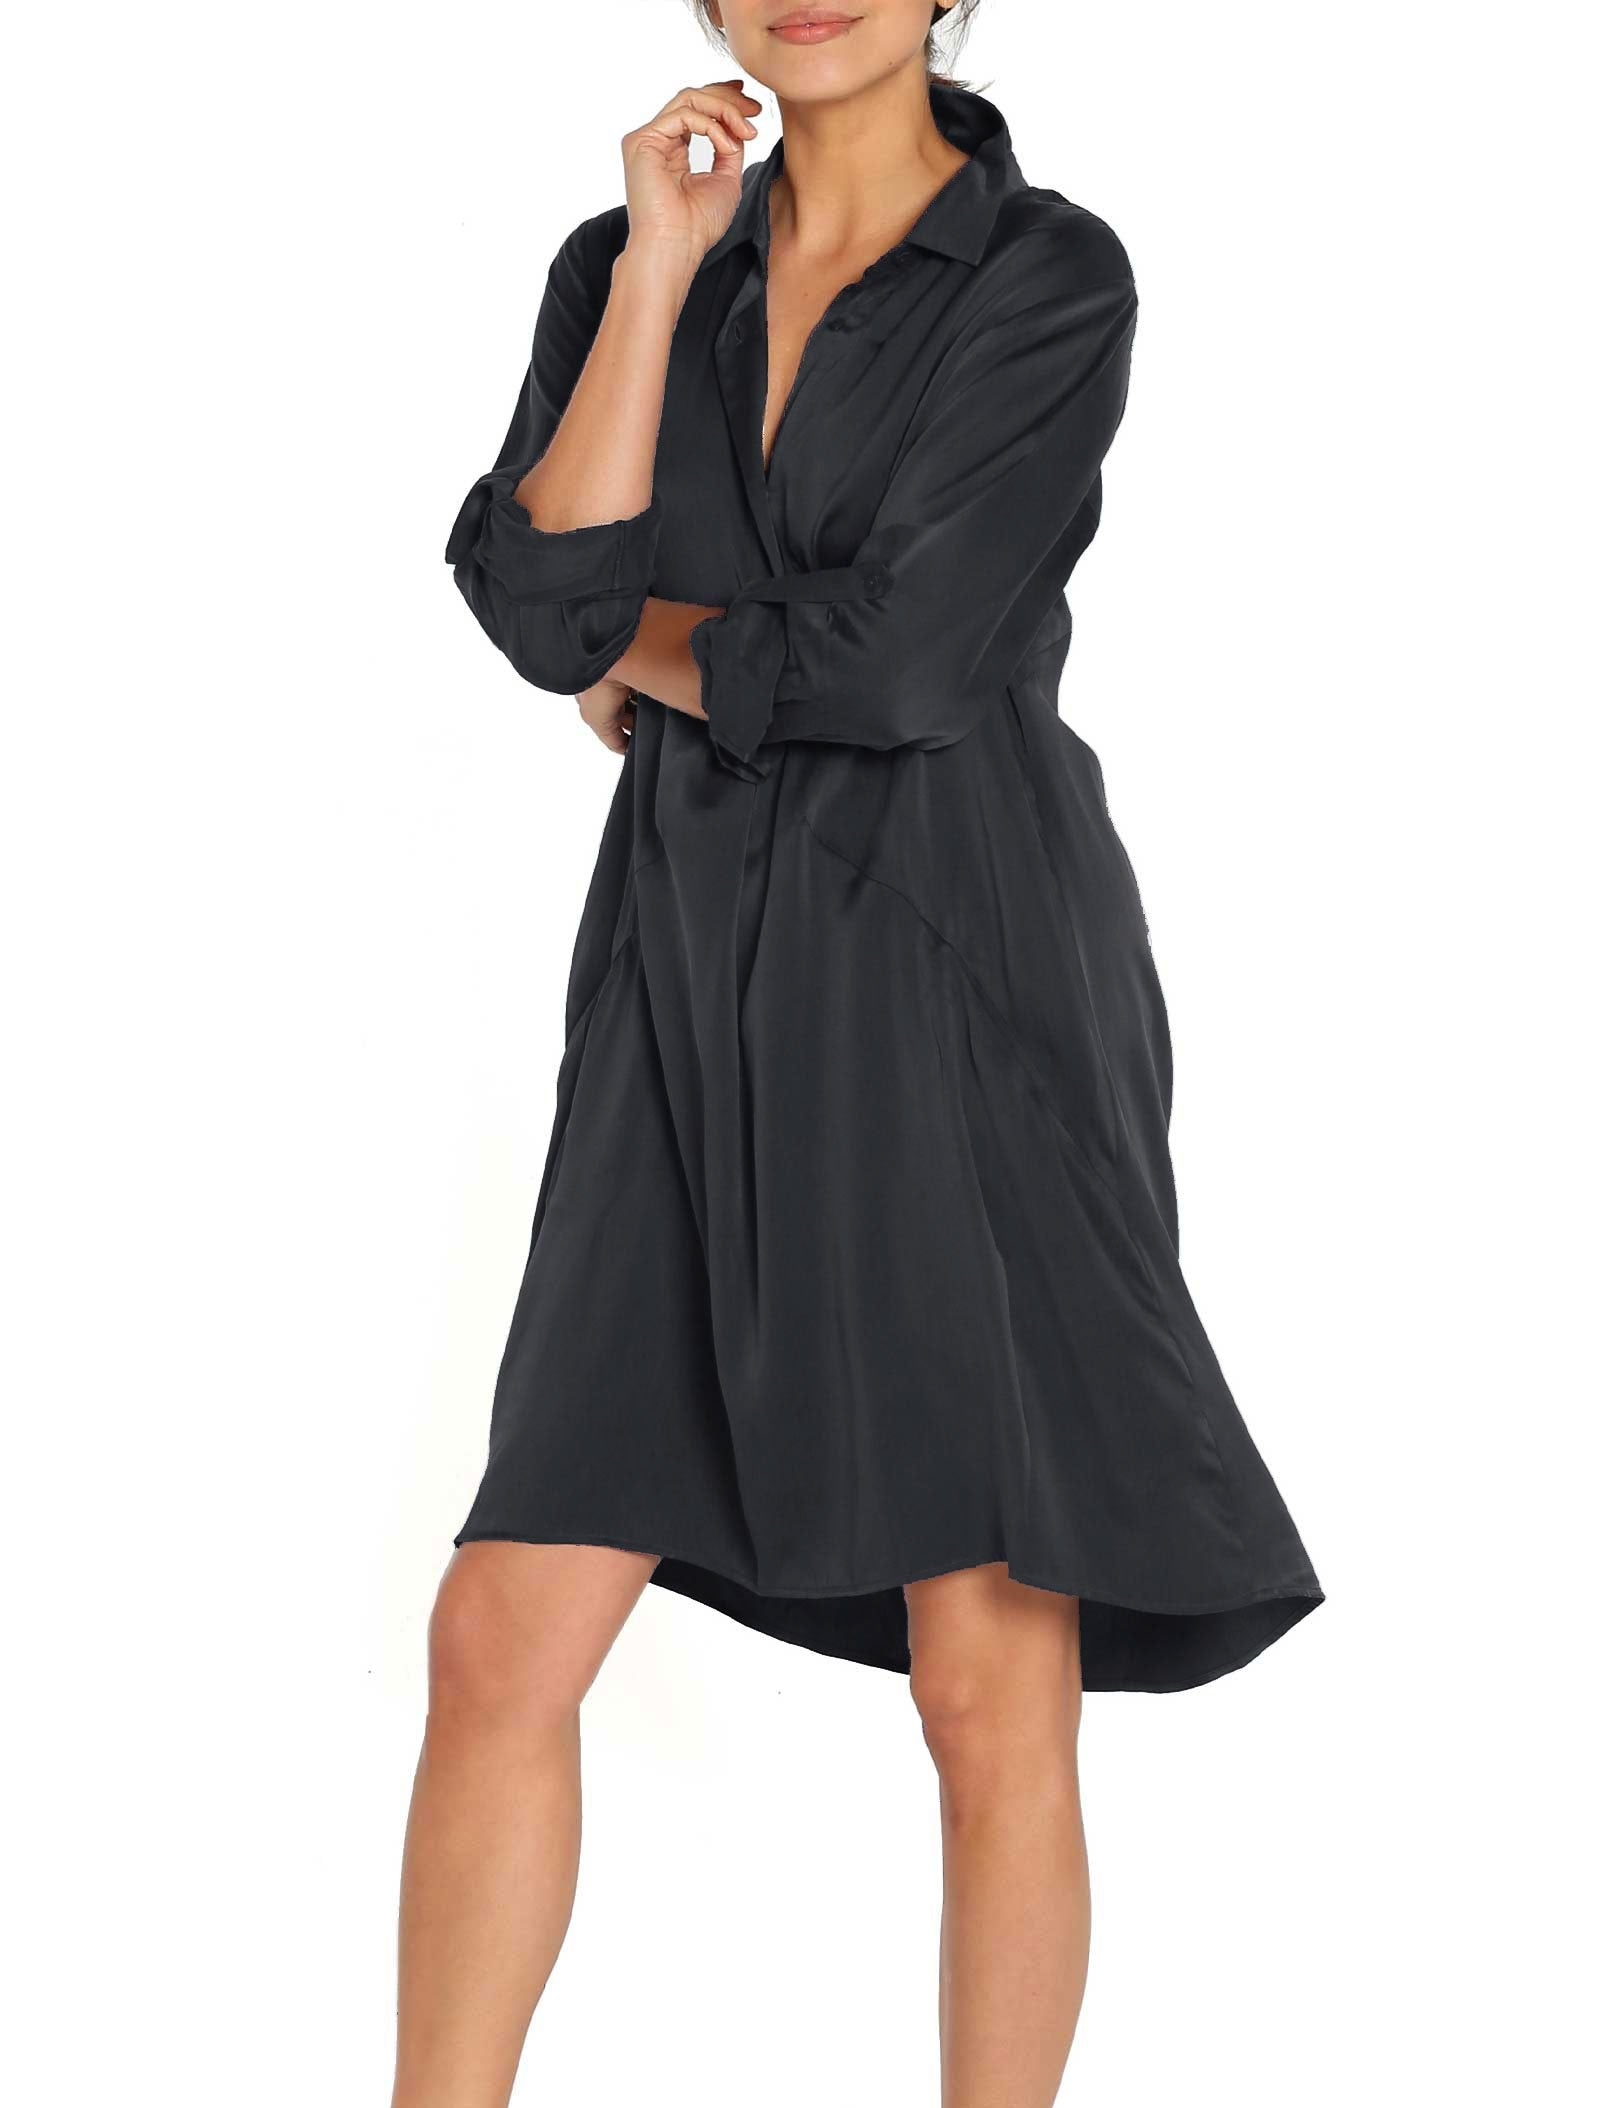 Pure Silk Nightshirt in Black